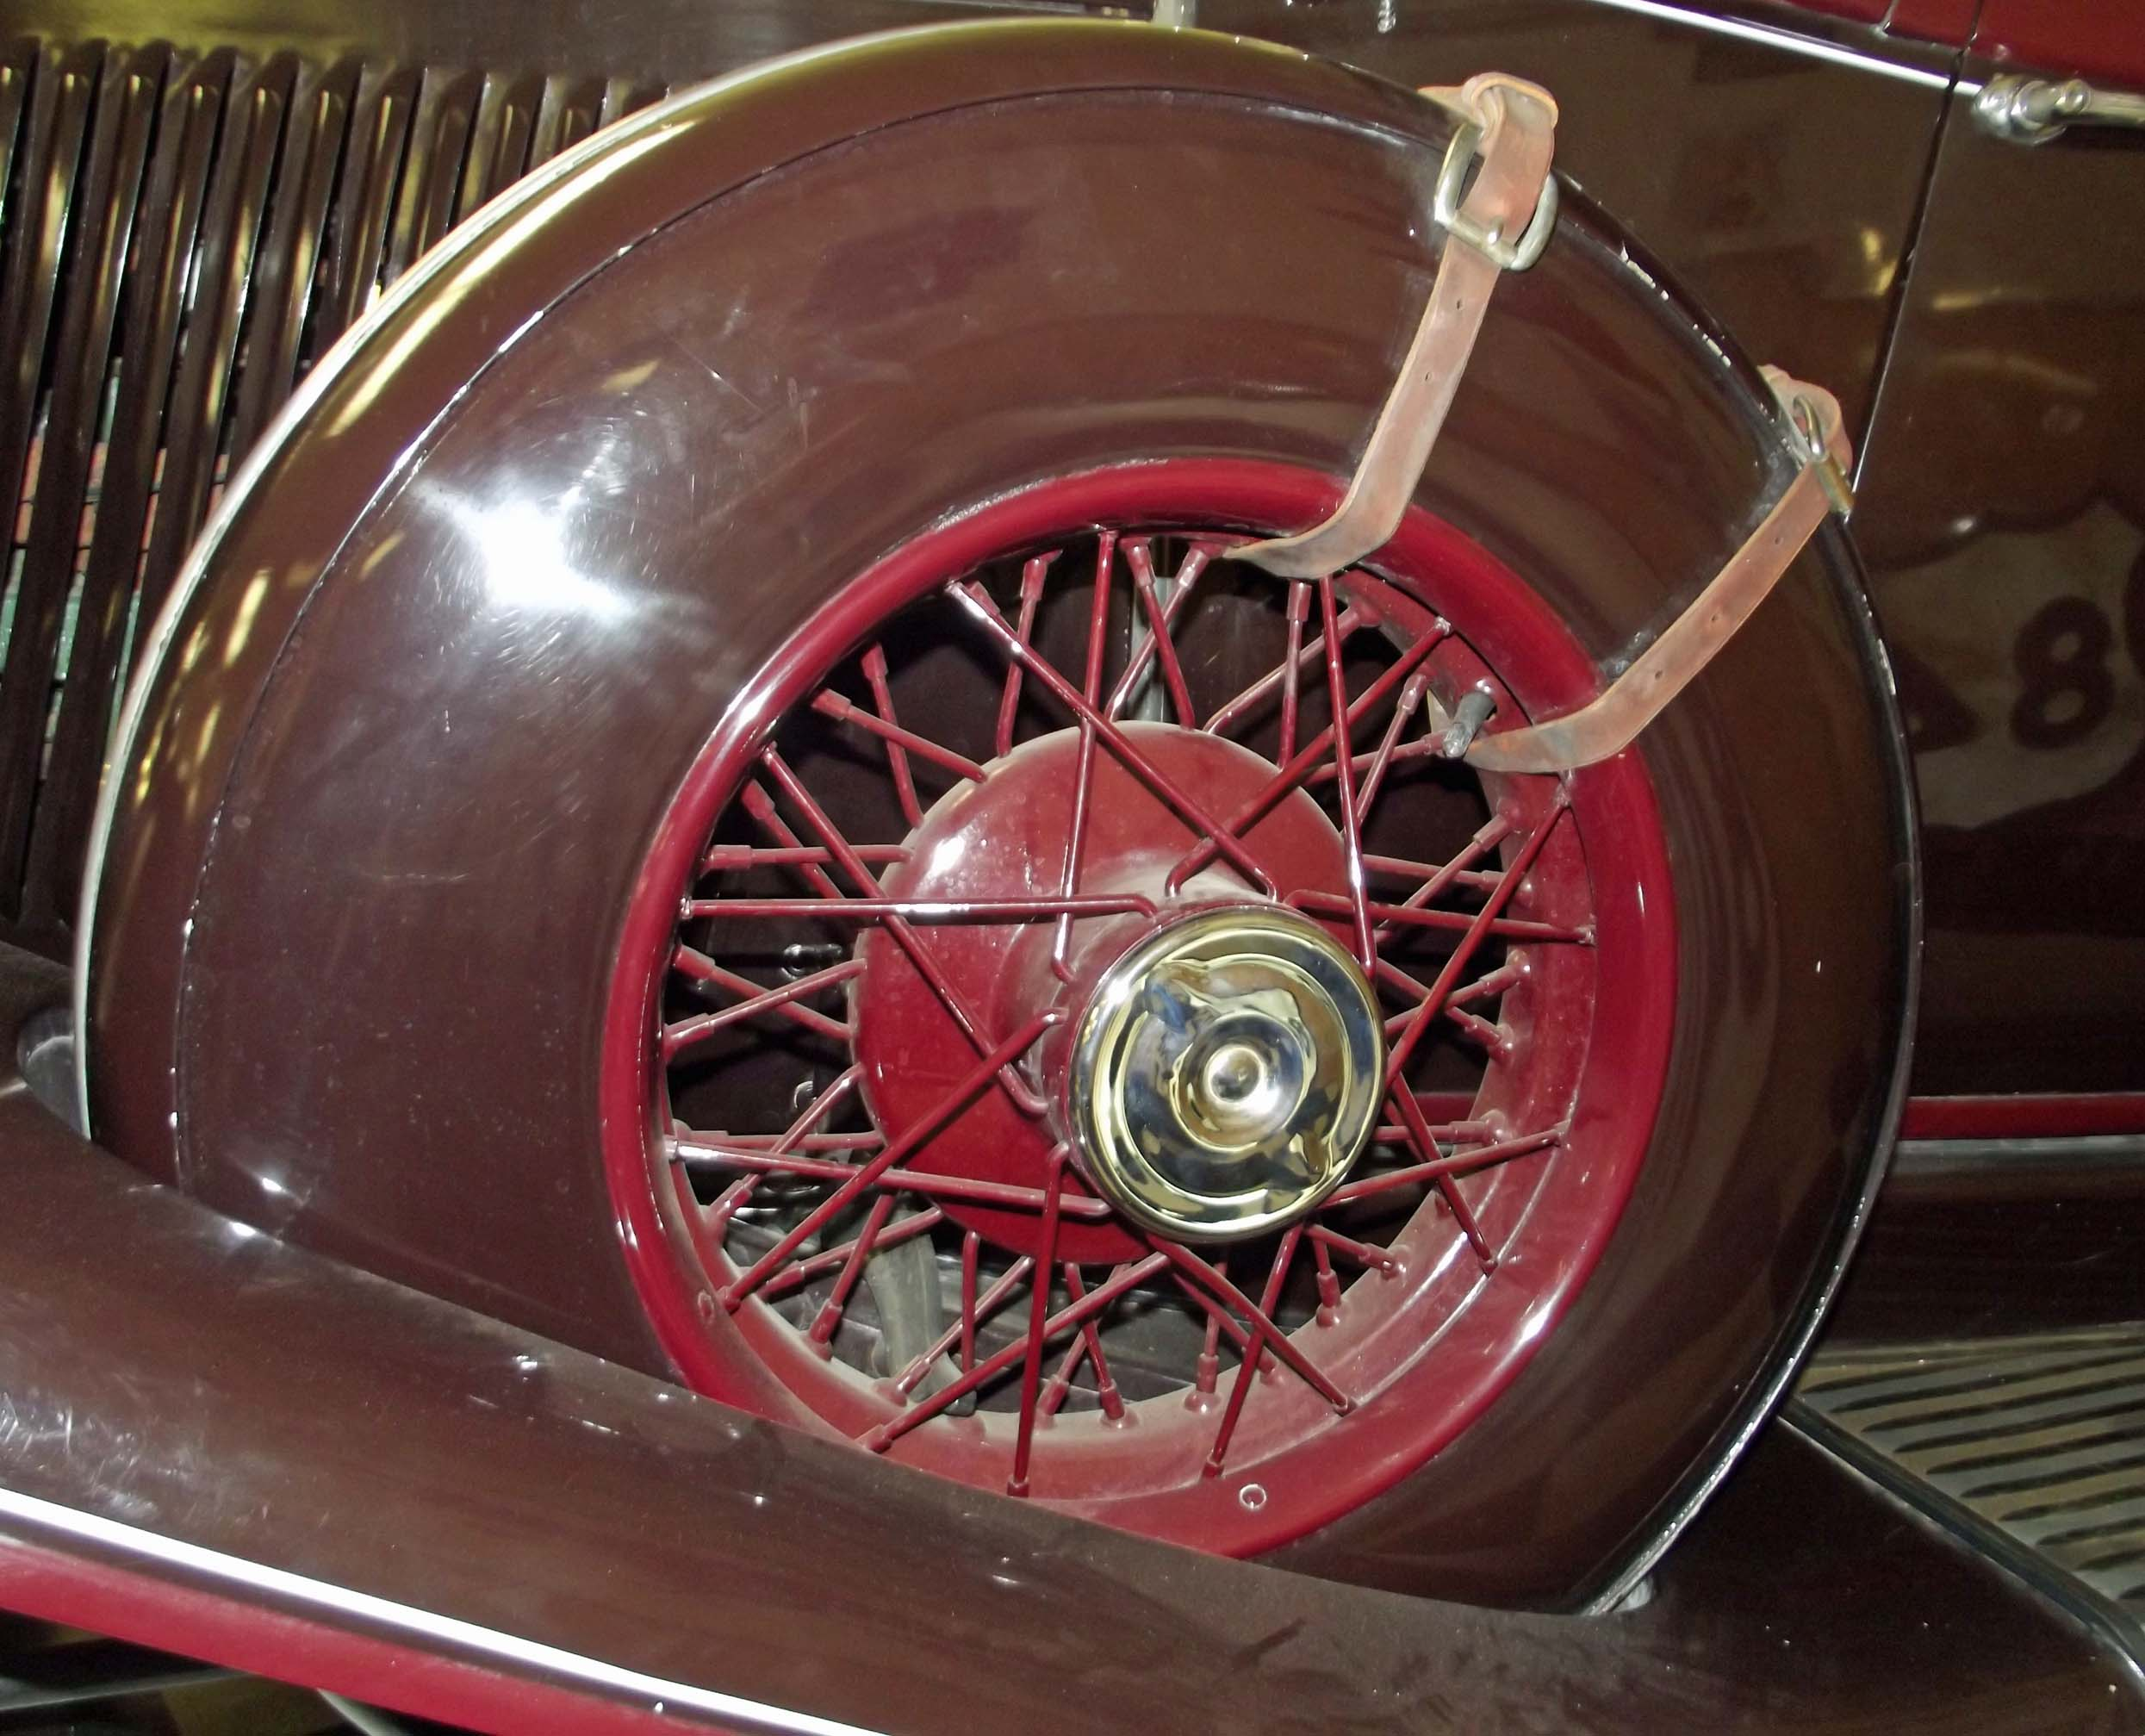 Brown car wheel with red hub spokes